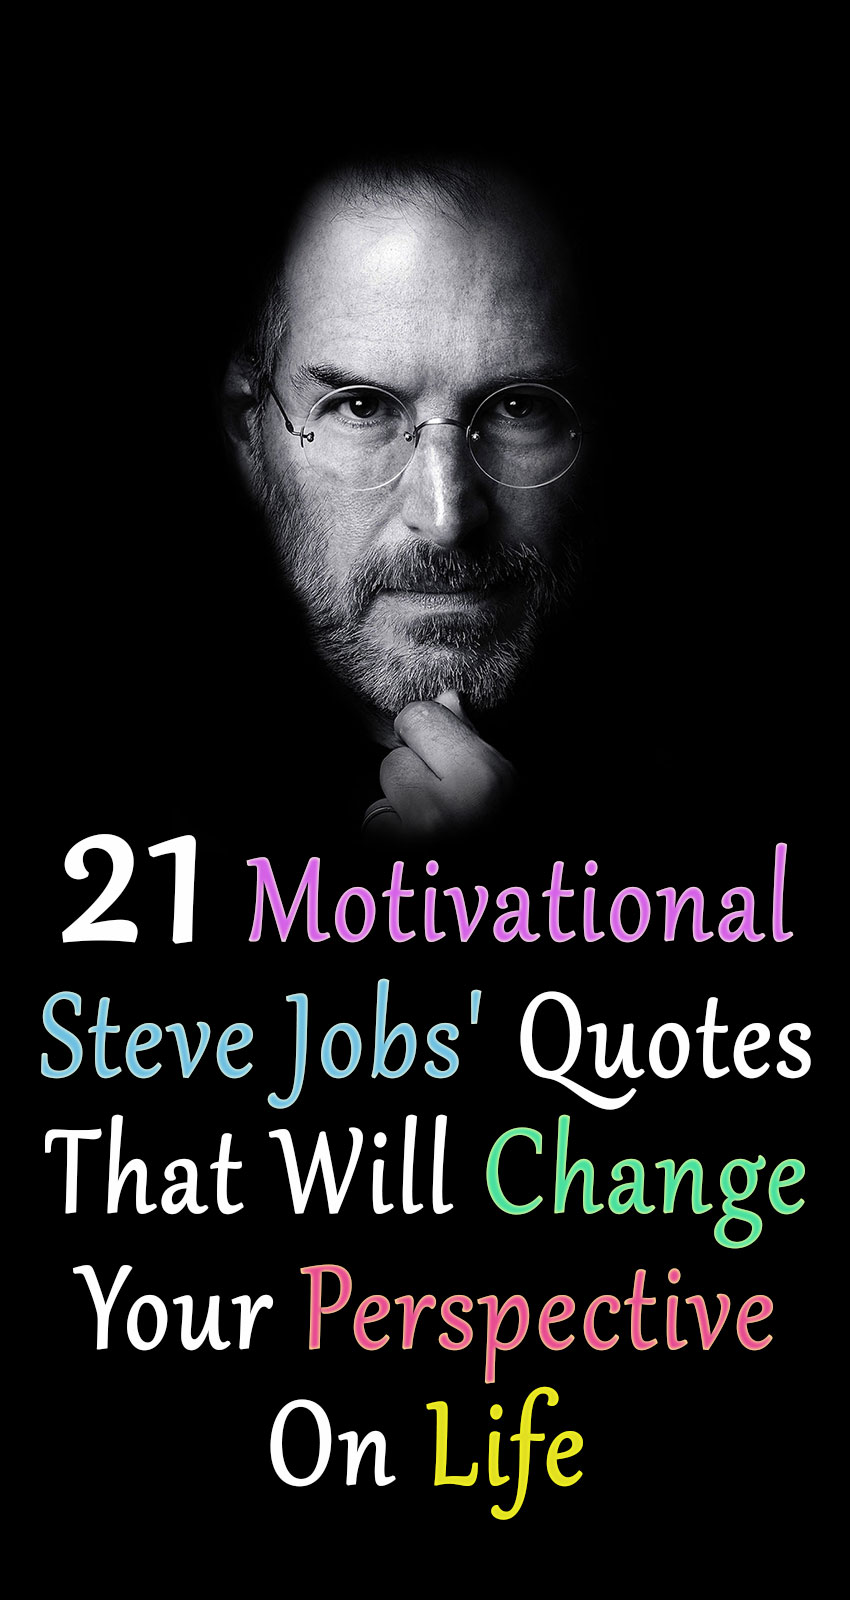 Steve Jobs Was One Of The Most Creative And Daring CEOu0027s; A Global Icon Who  Has Shaped The World Of Technology And Media. Actually, Thereu0027s Not A  Single ...